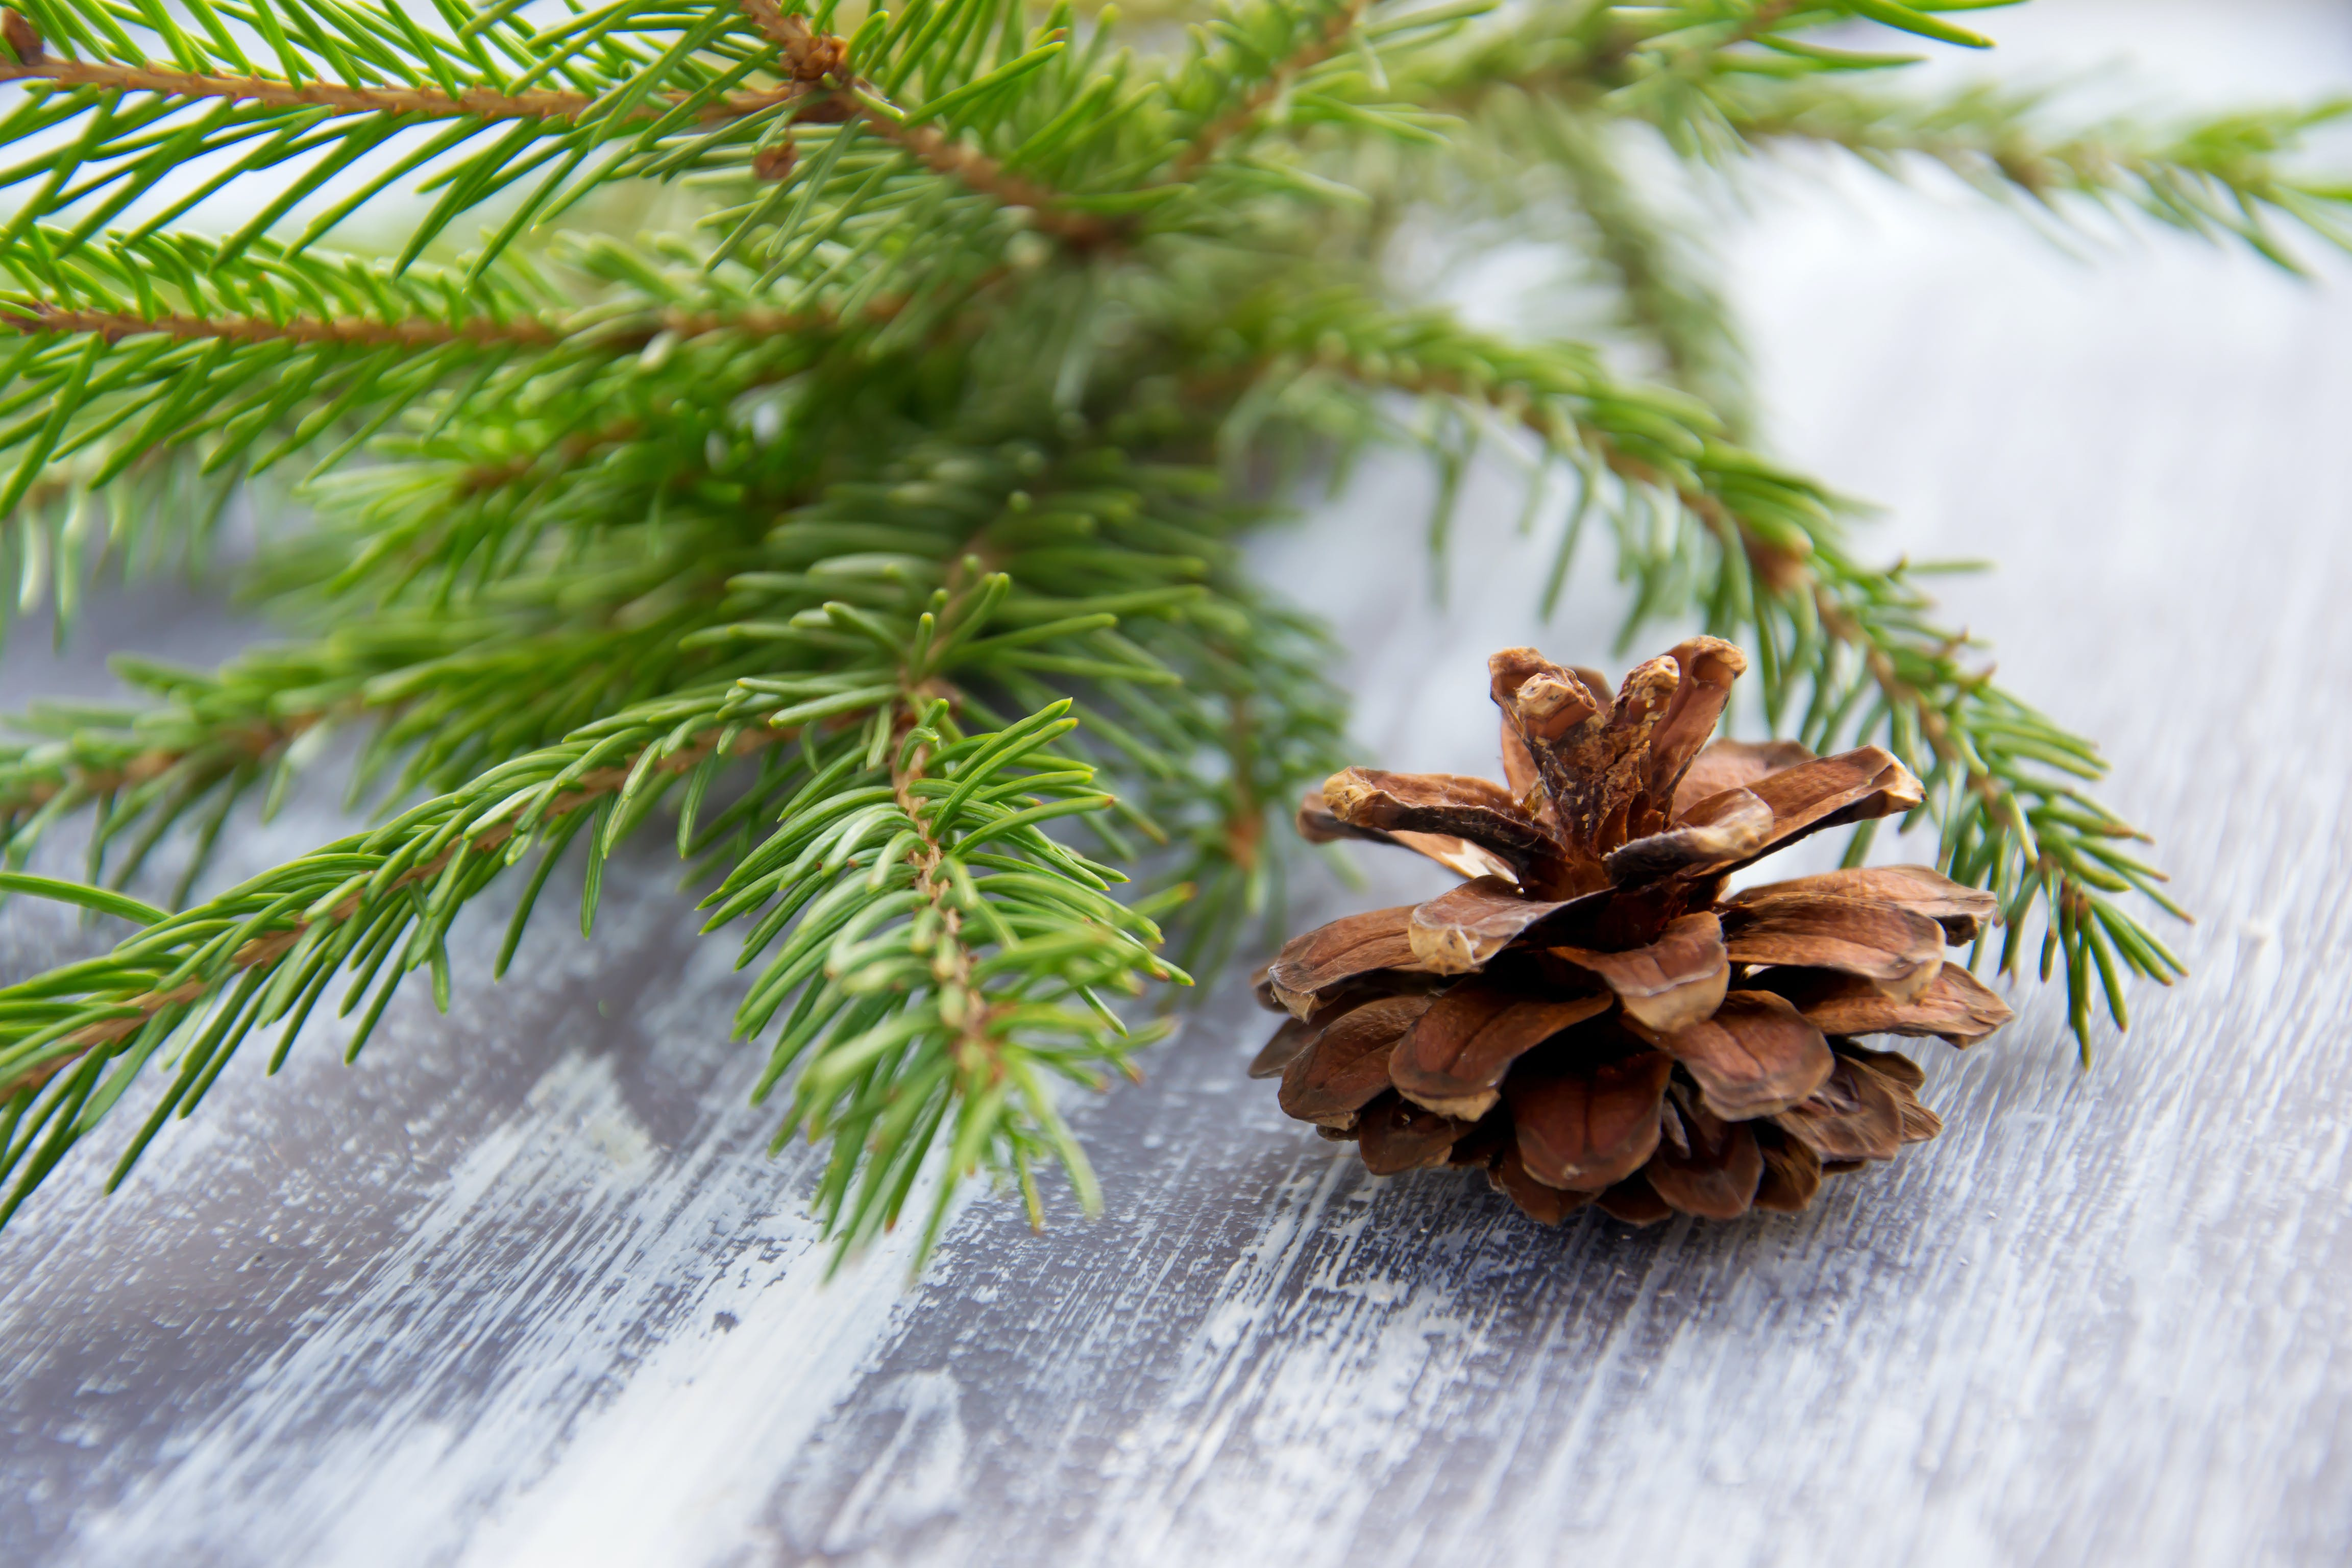 Close-UP Photo of Pine Cone